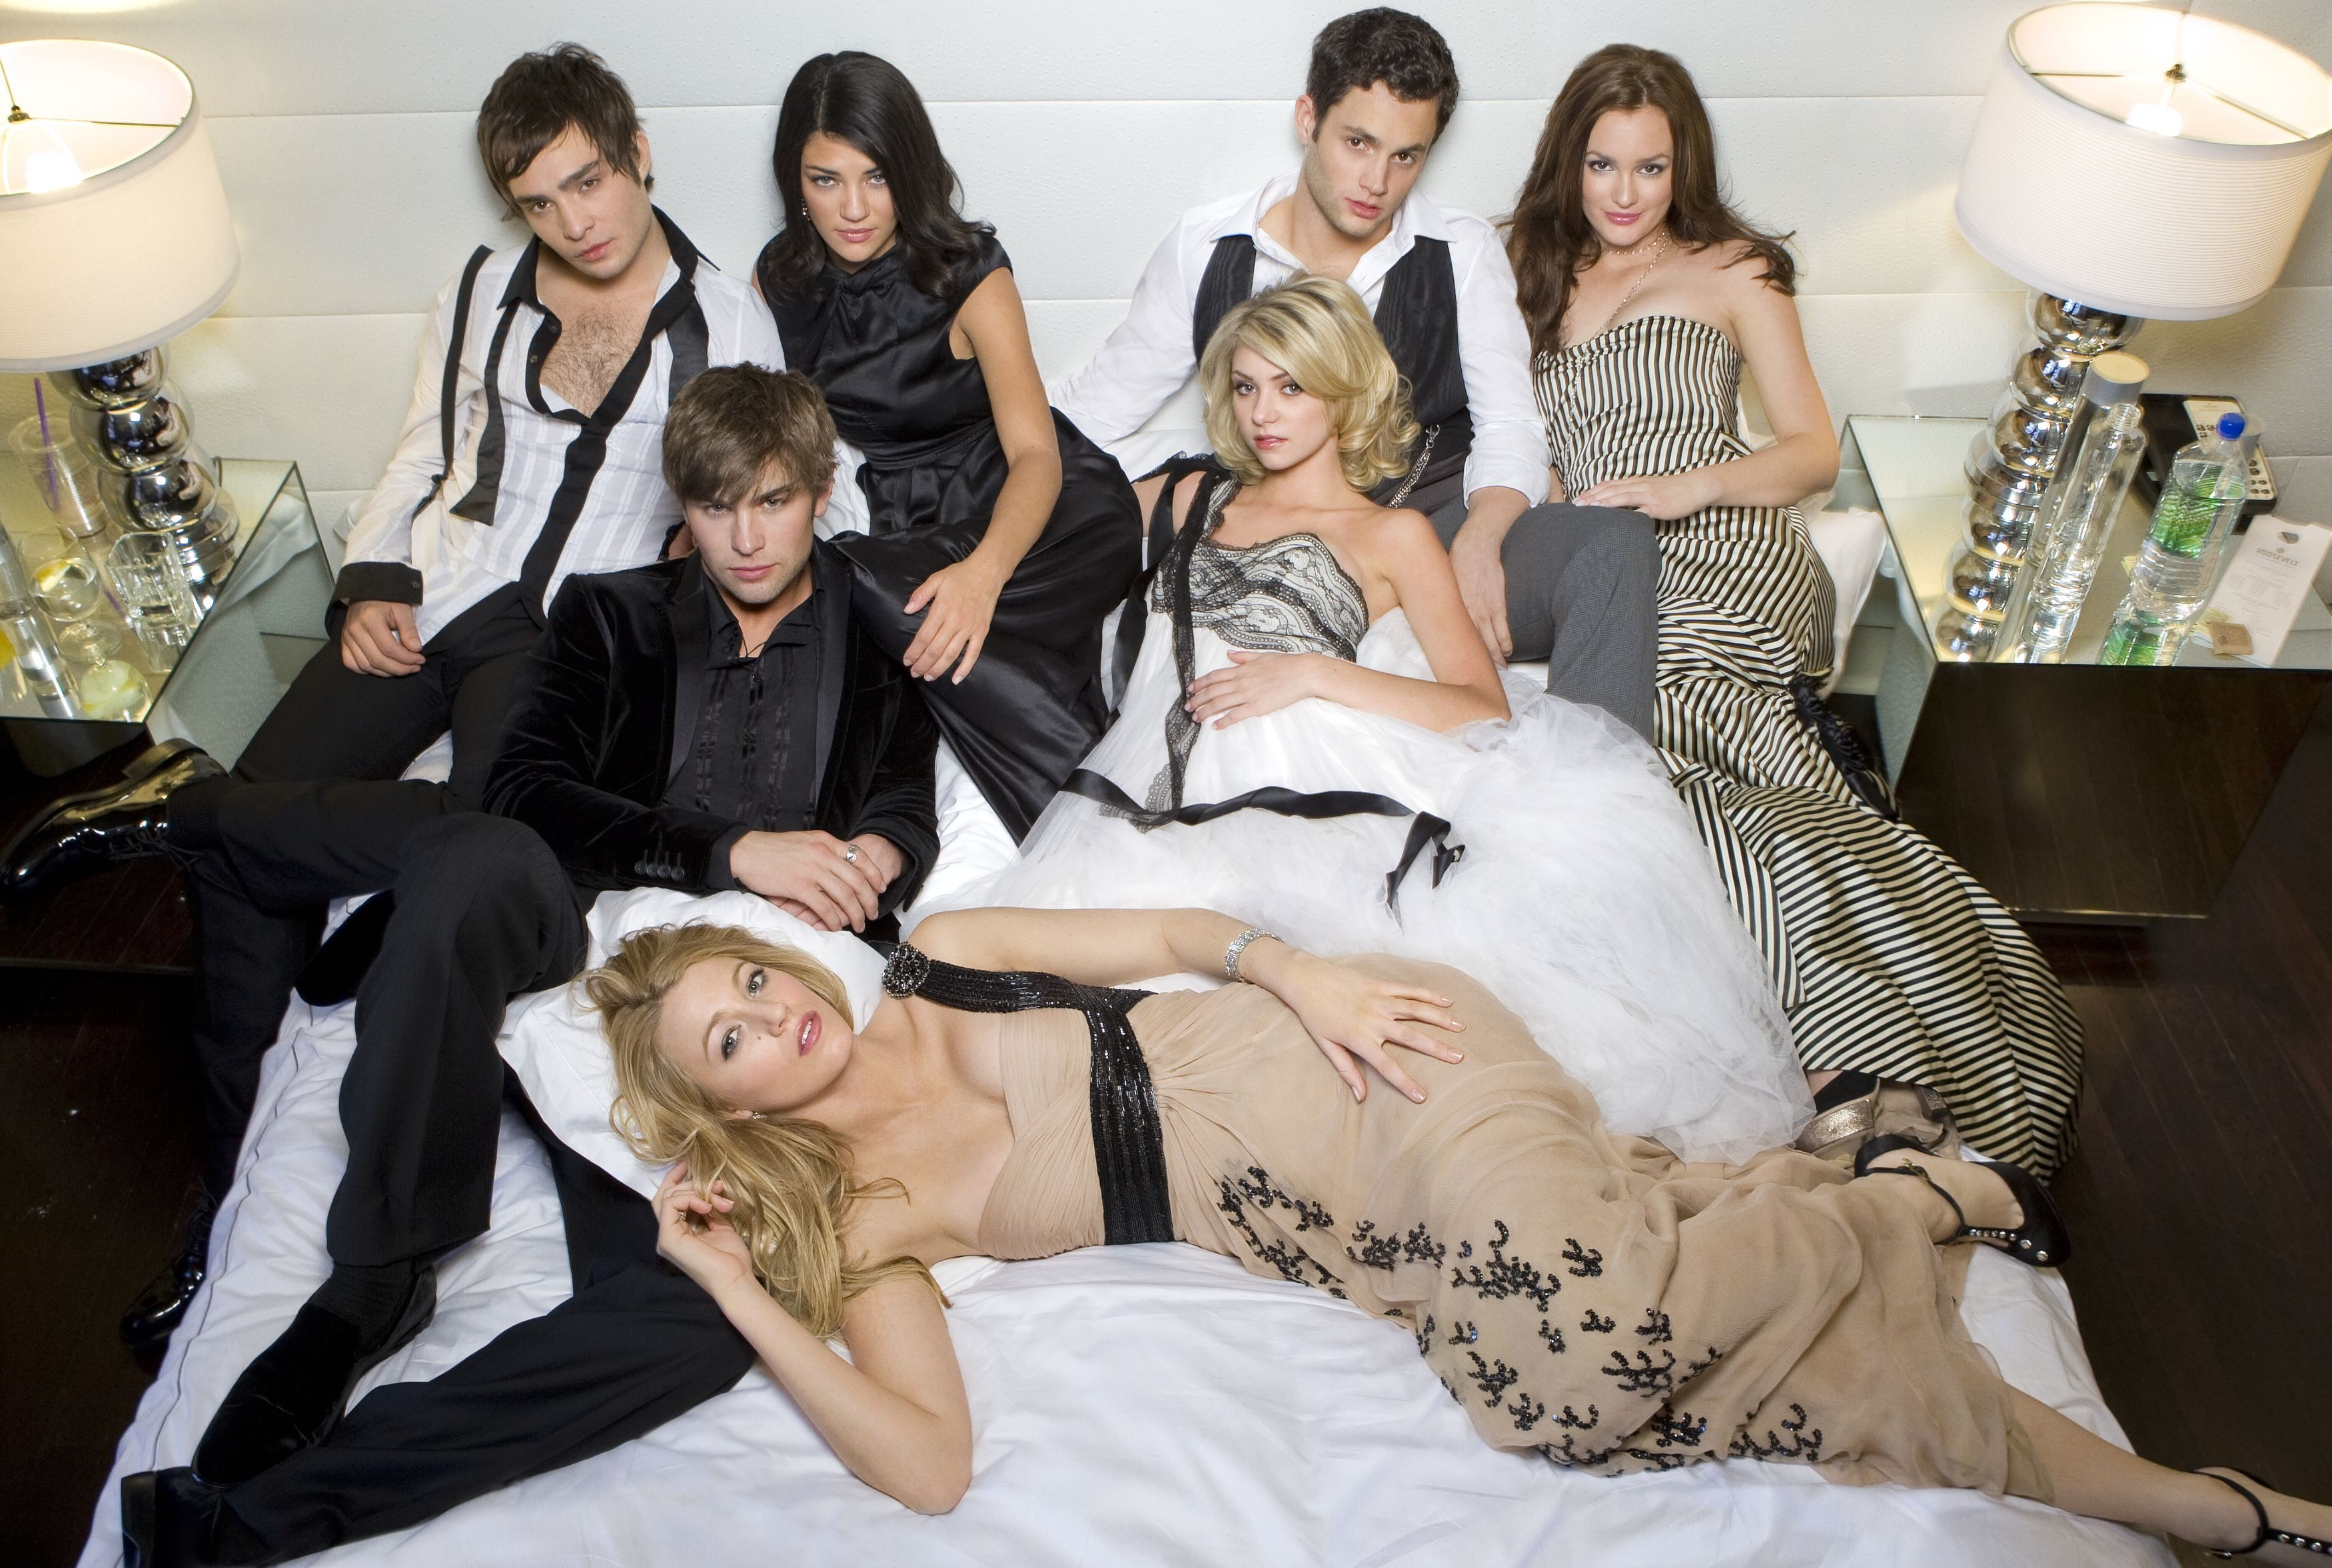 Wallpaper: cast principale della season 2 di Gossip Girl